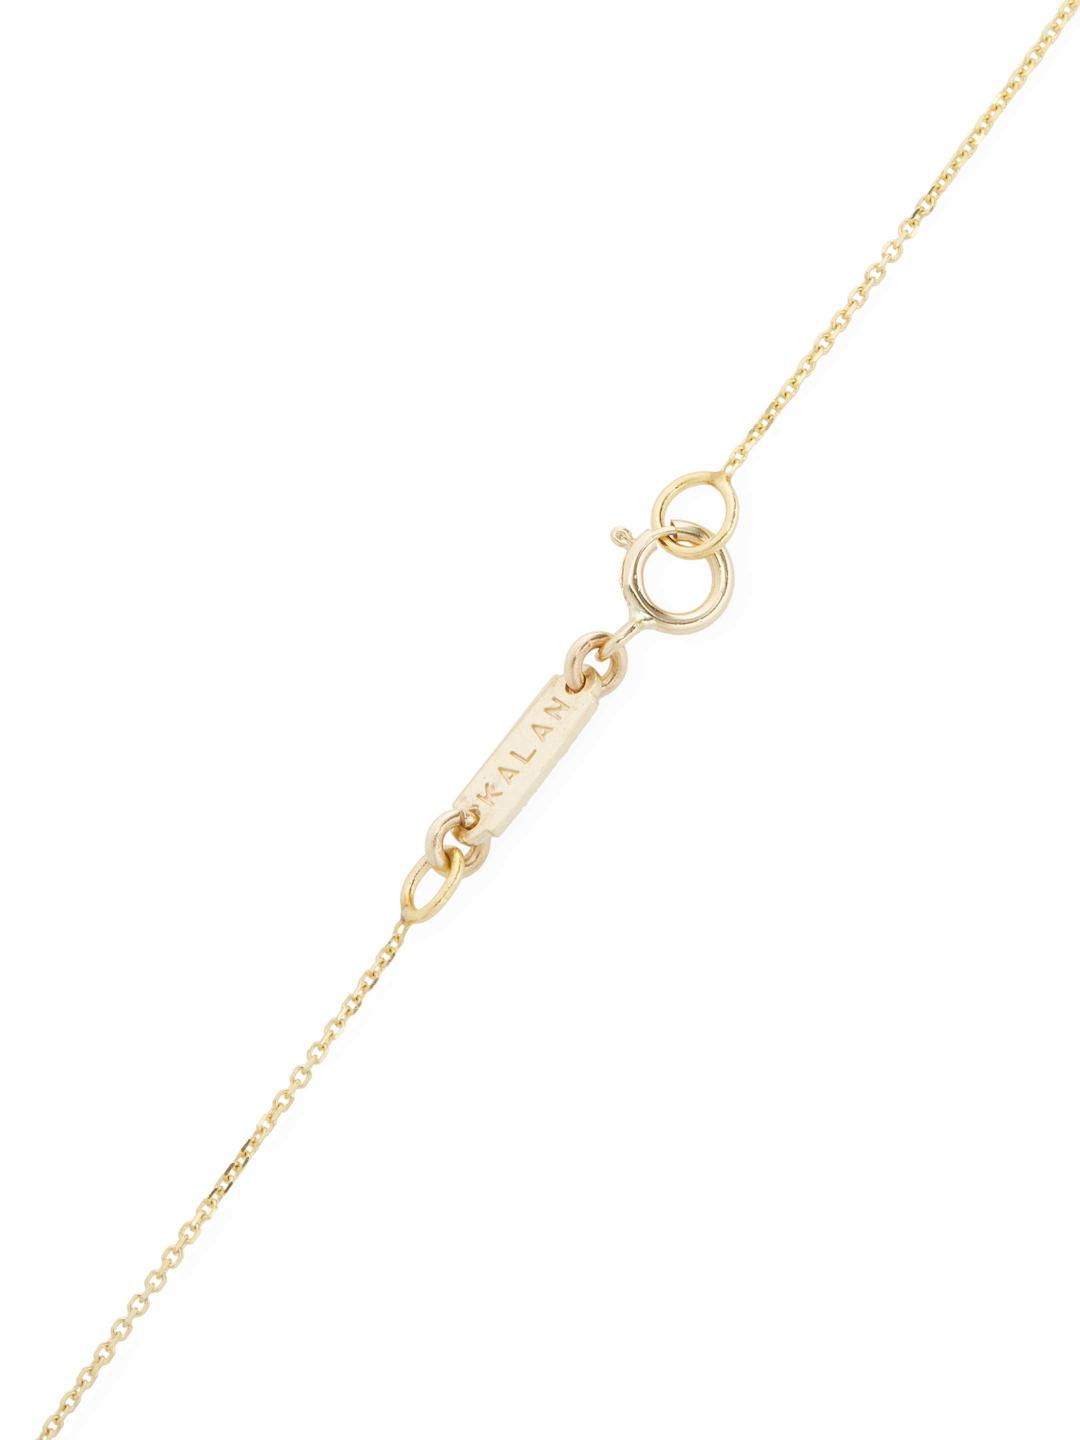 Suzanne Kalan 0.26 Tcw Champagne Diamond & Moonstone 14k Yellow Gold Bezel Pendant Necklace in Metallic